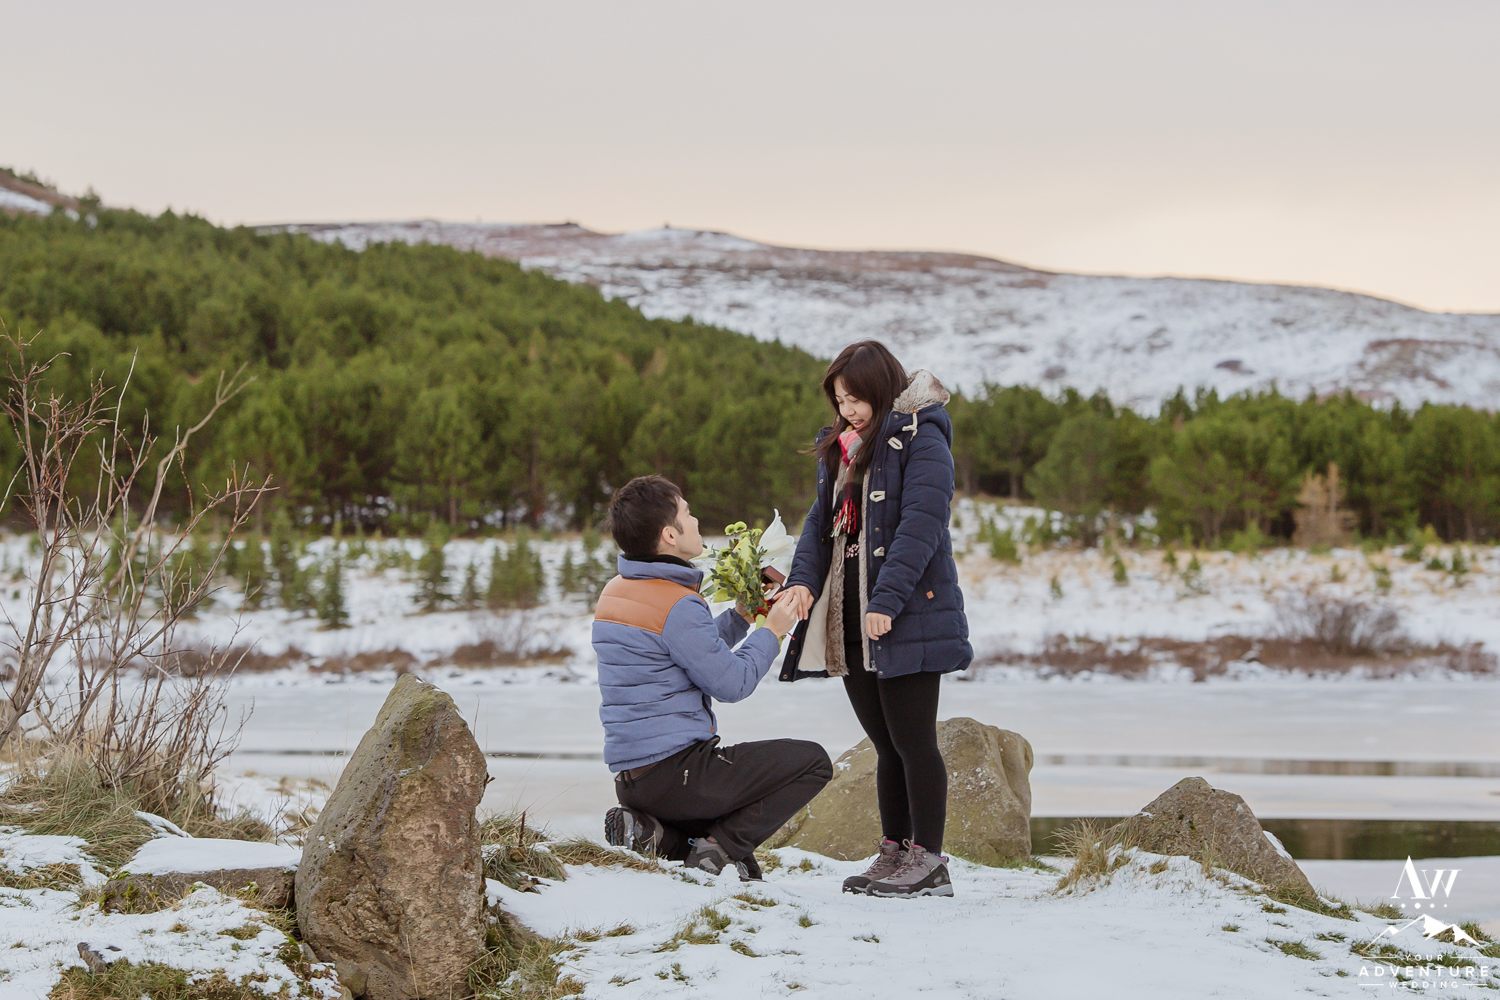 surprise-marriage-proposal-in-iceland-6